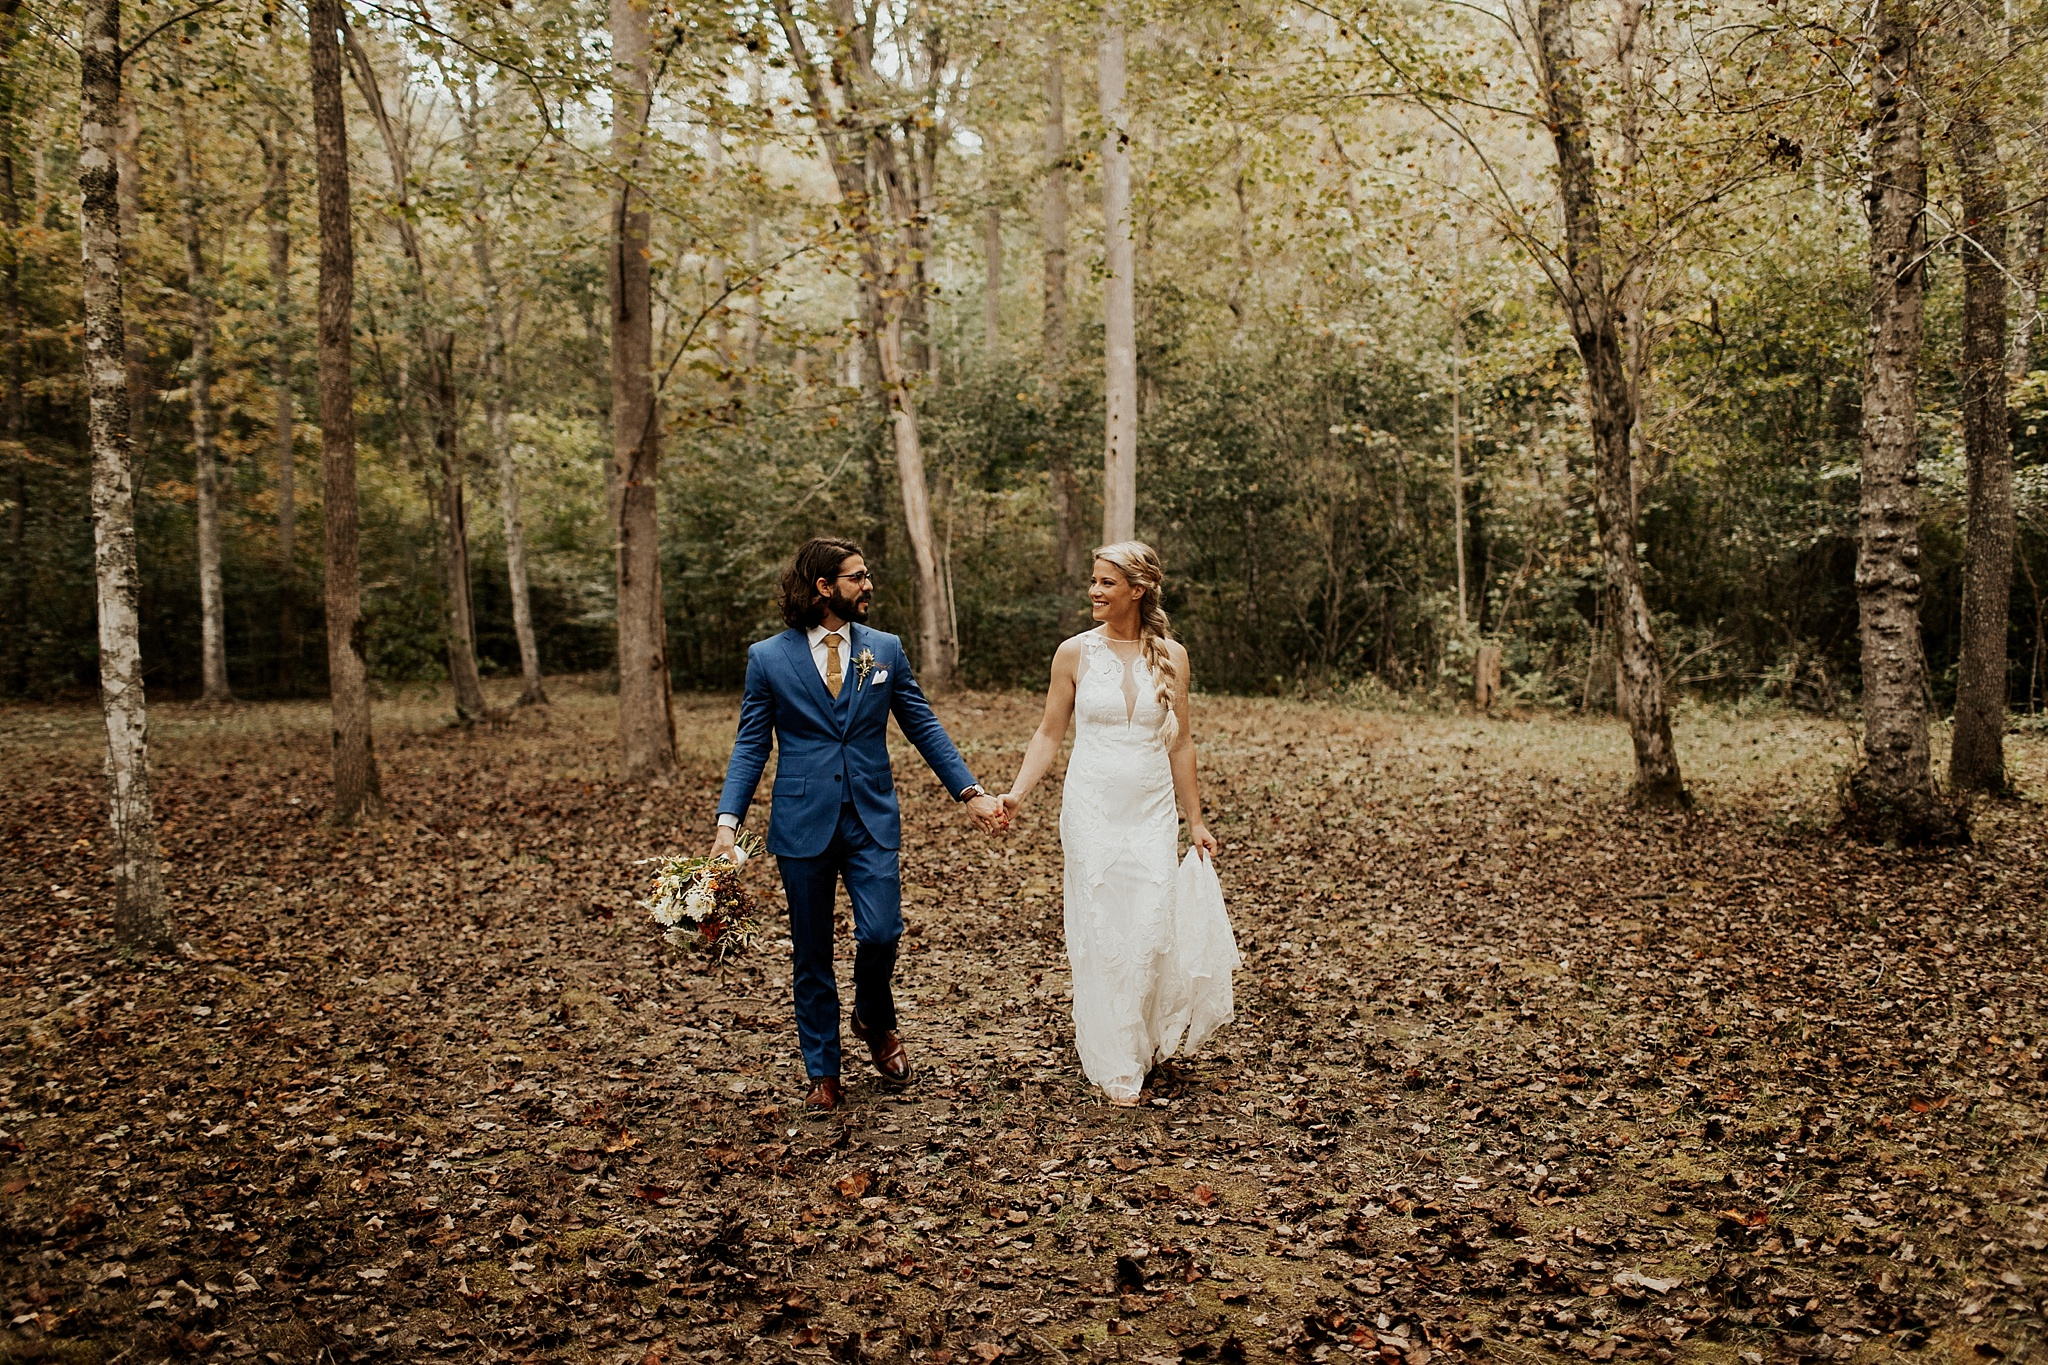 sugarboo_farms_intimate_mountain_wedding023.JPG